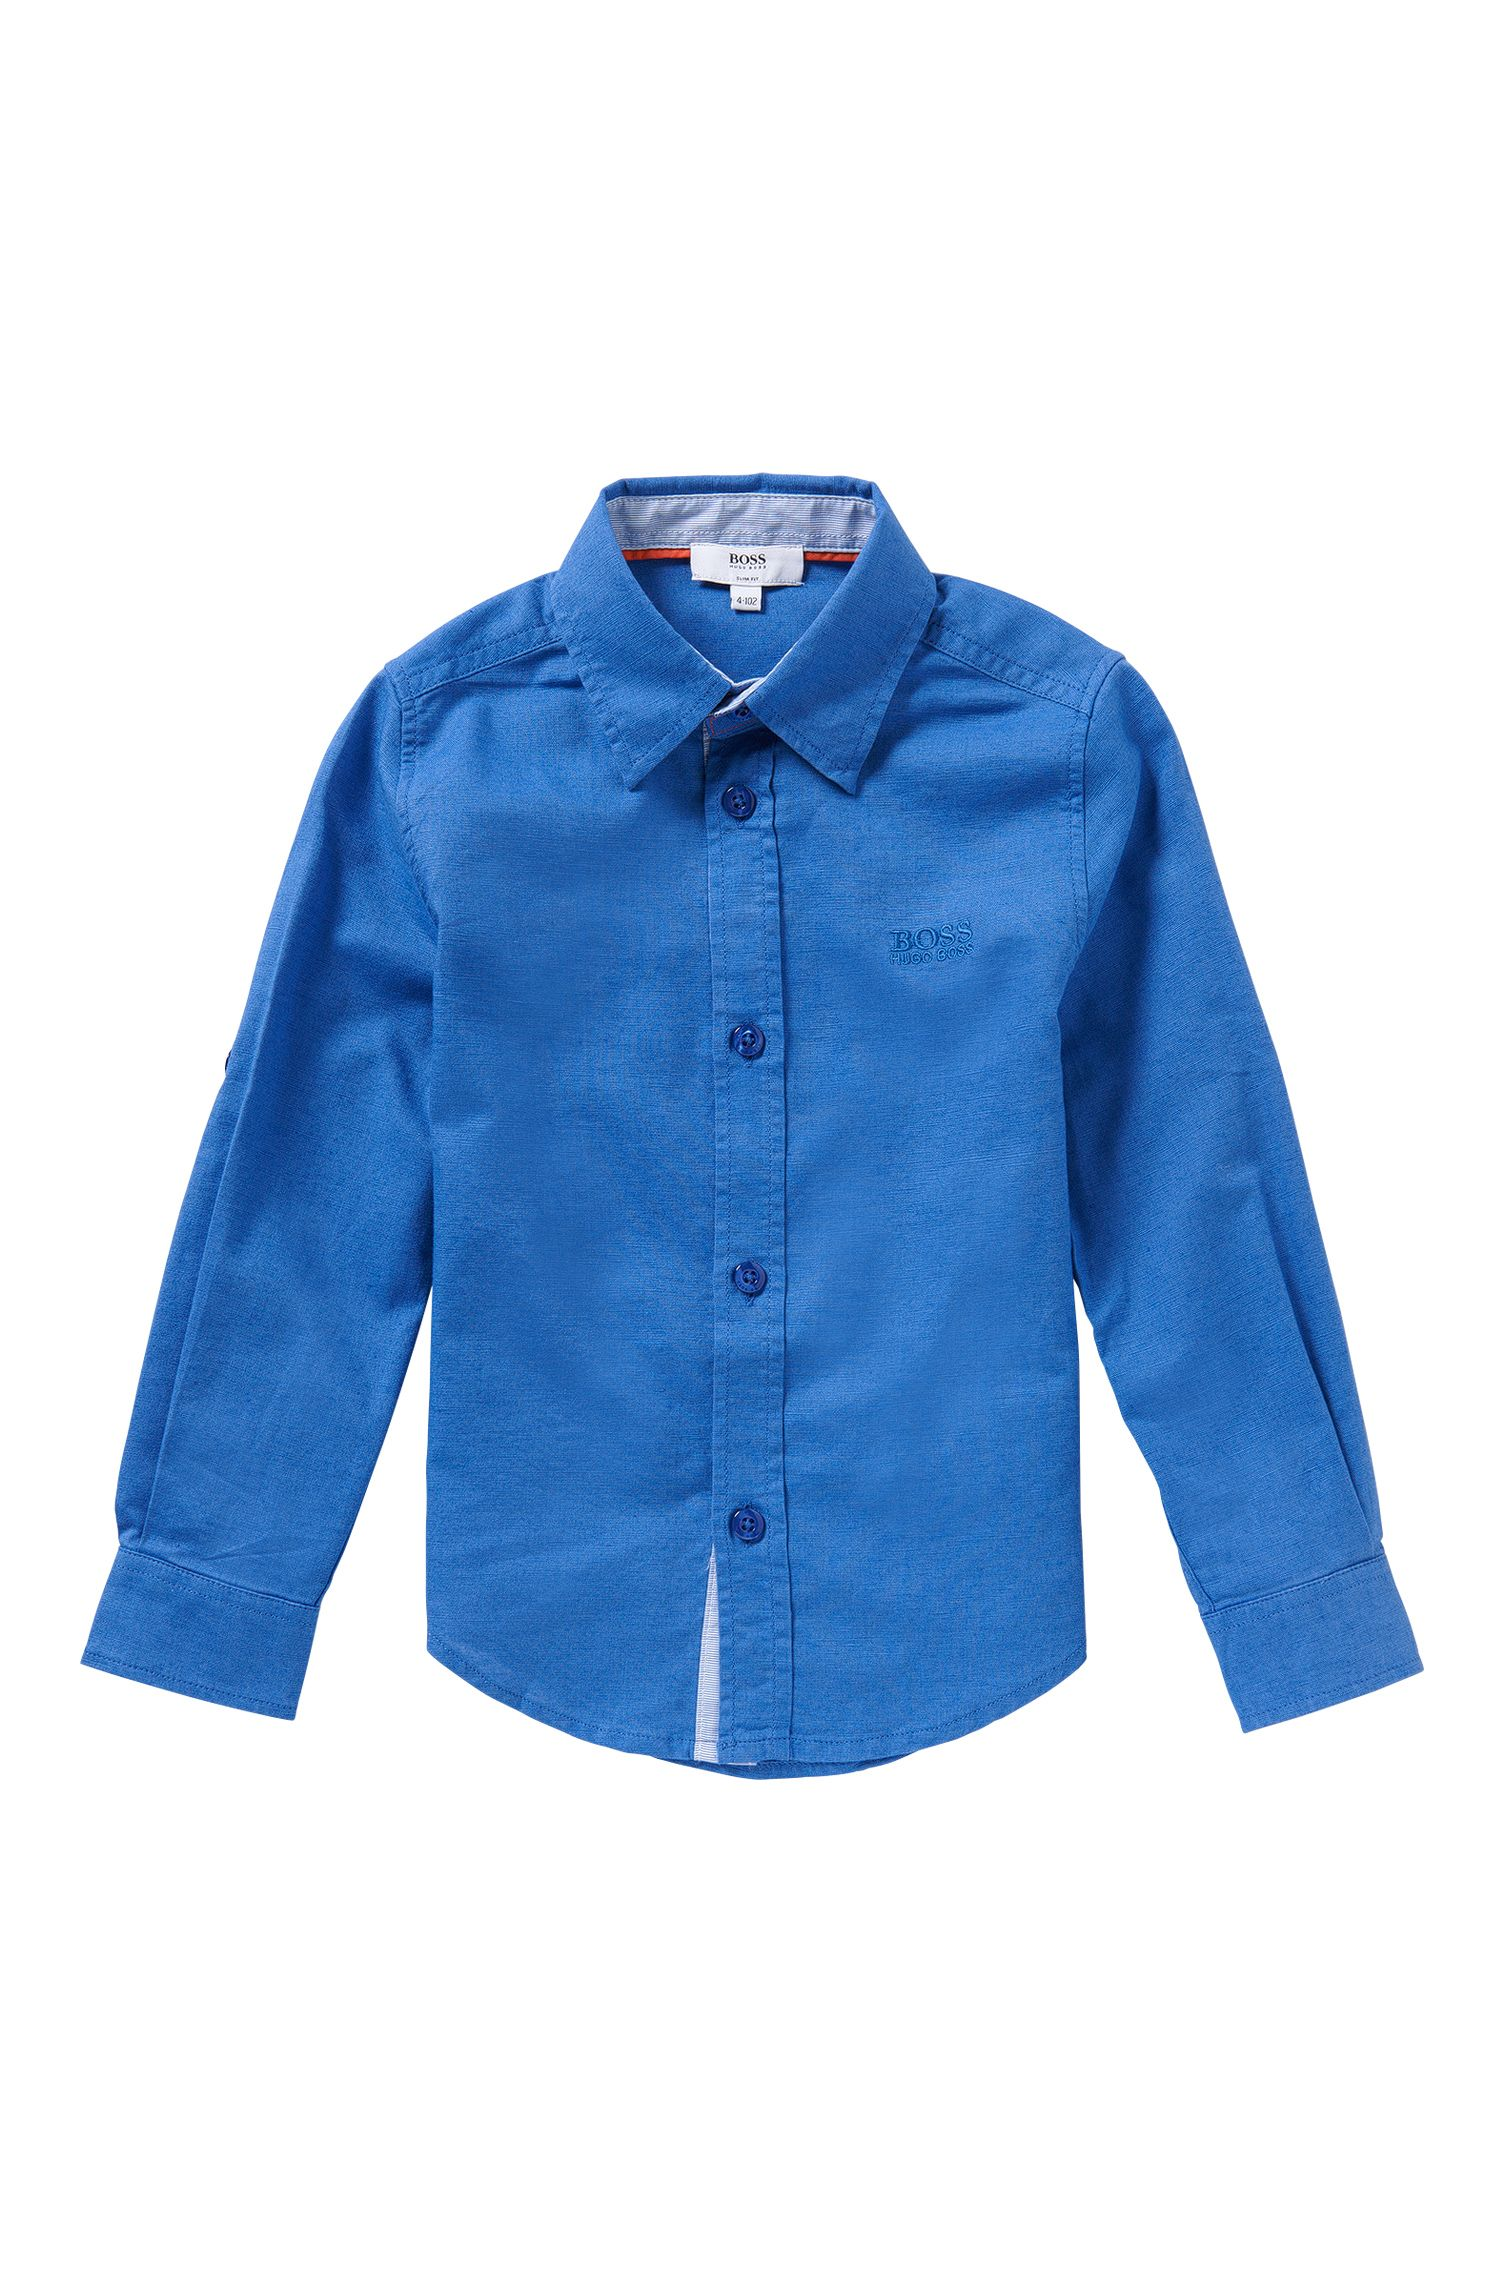 'J25949' | Boys Cotton Linen Blend Button Down Shirt